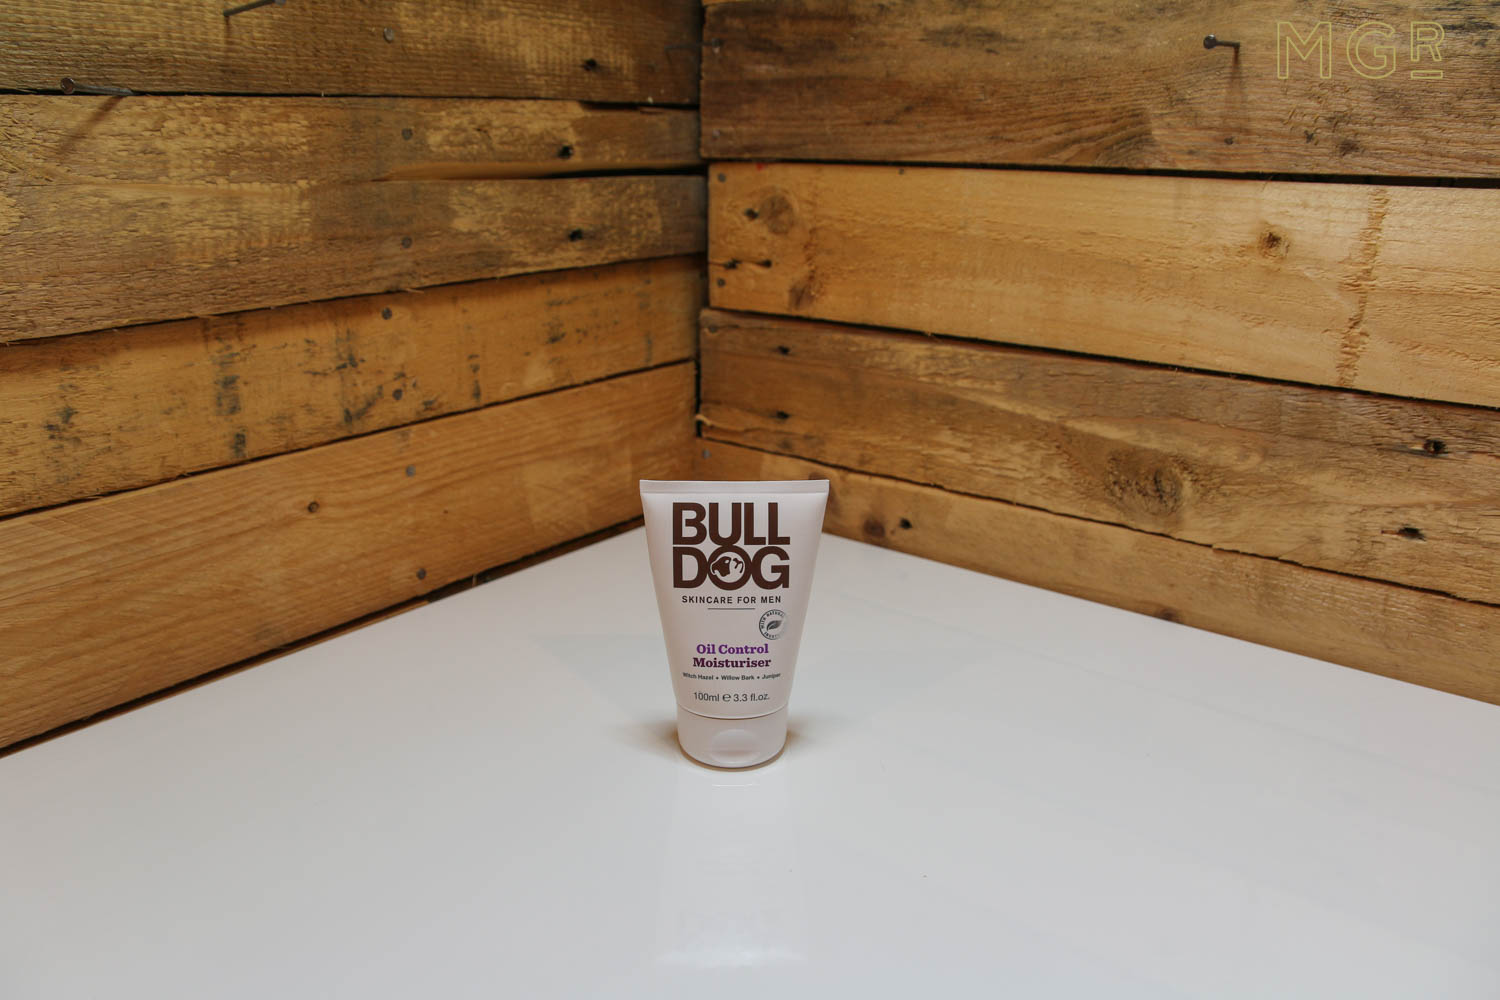 bulldog-mens-oil-control-moisturiser-review-1